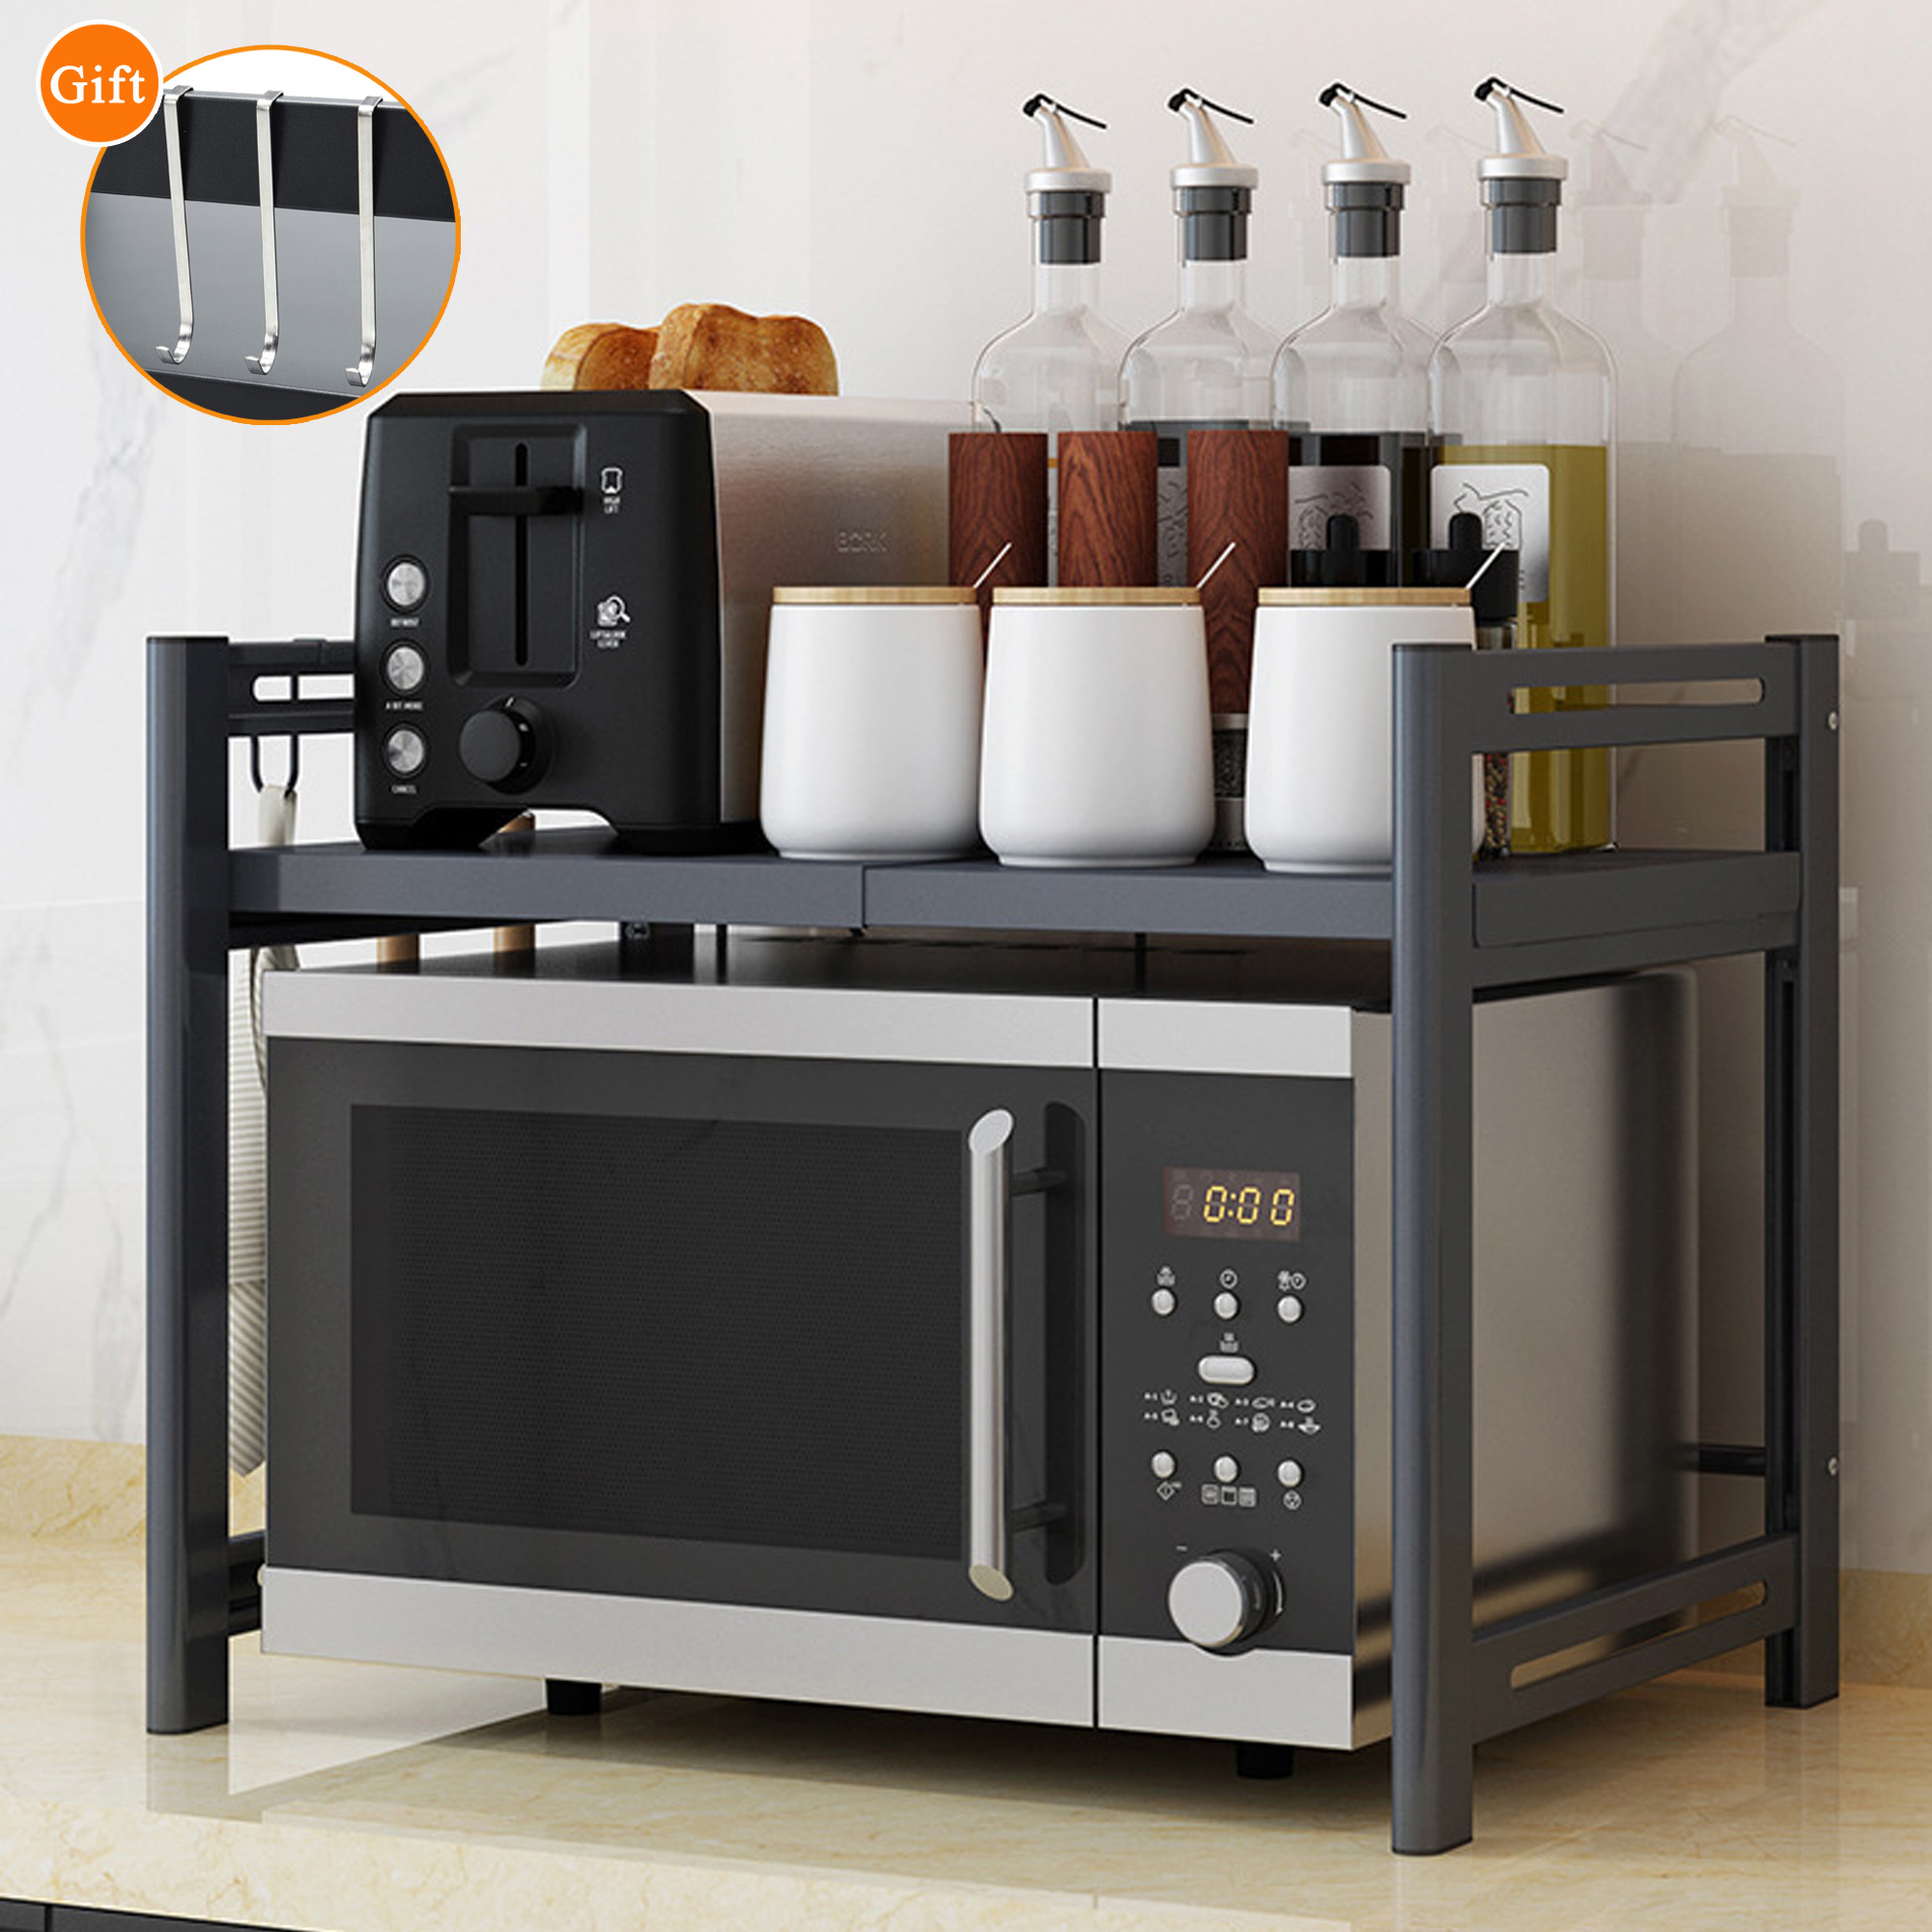 nk metal microwave oven stand rack 2 layers storage racks kitchen cabinet counter shelf counter shelf organizer microwave oven rack